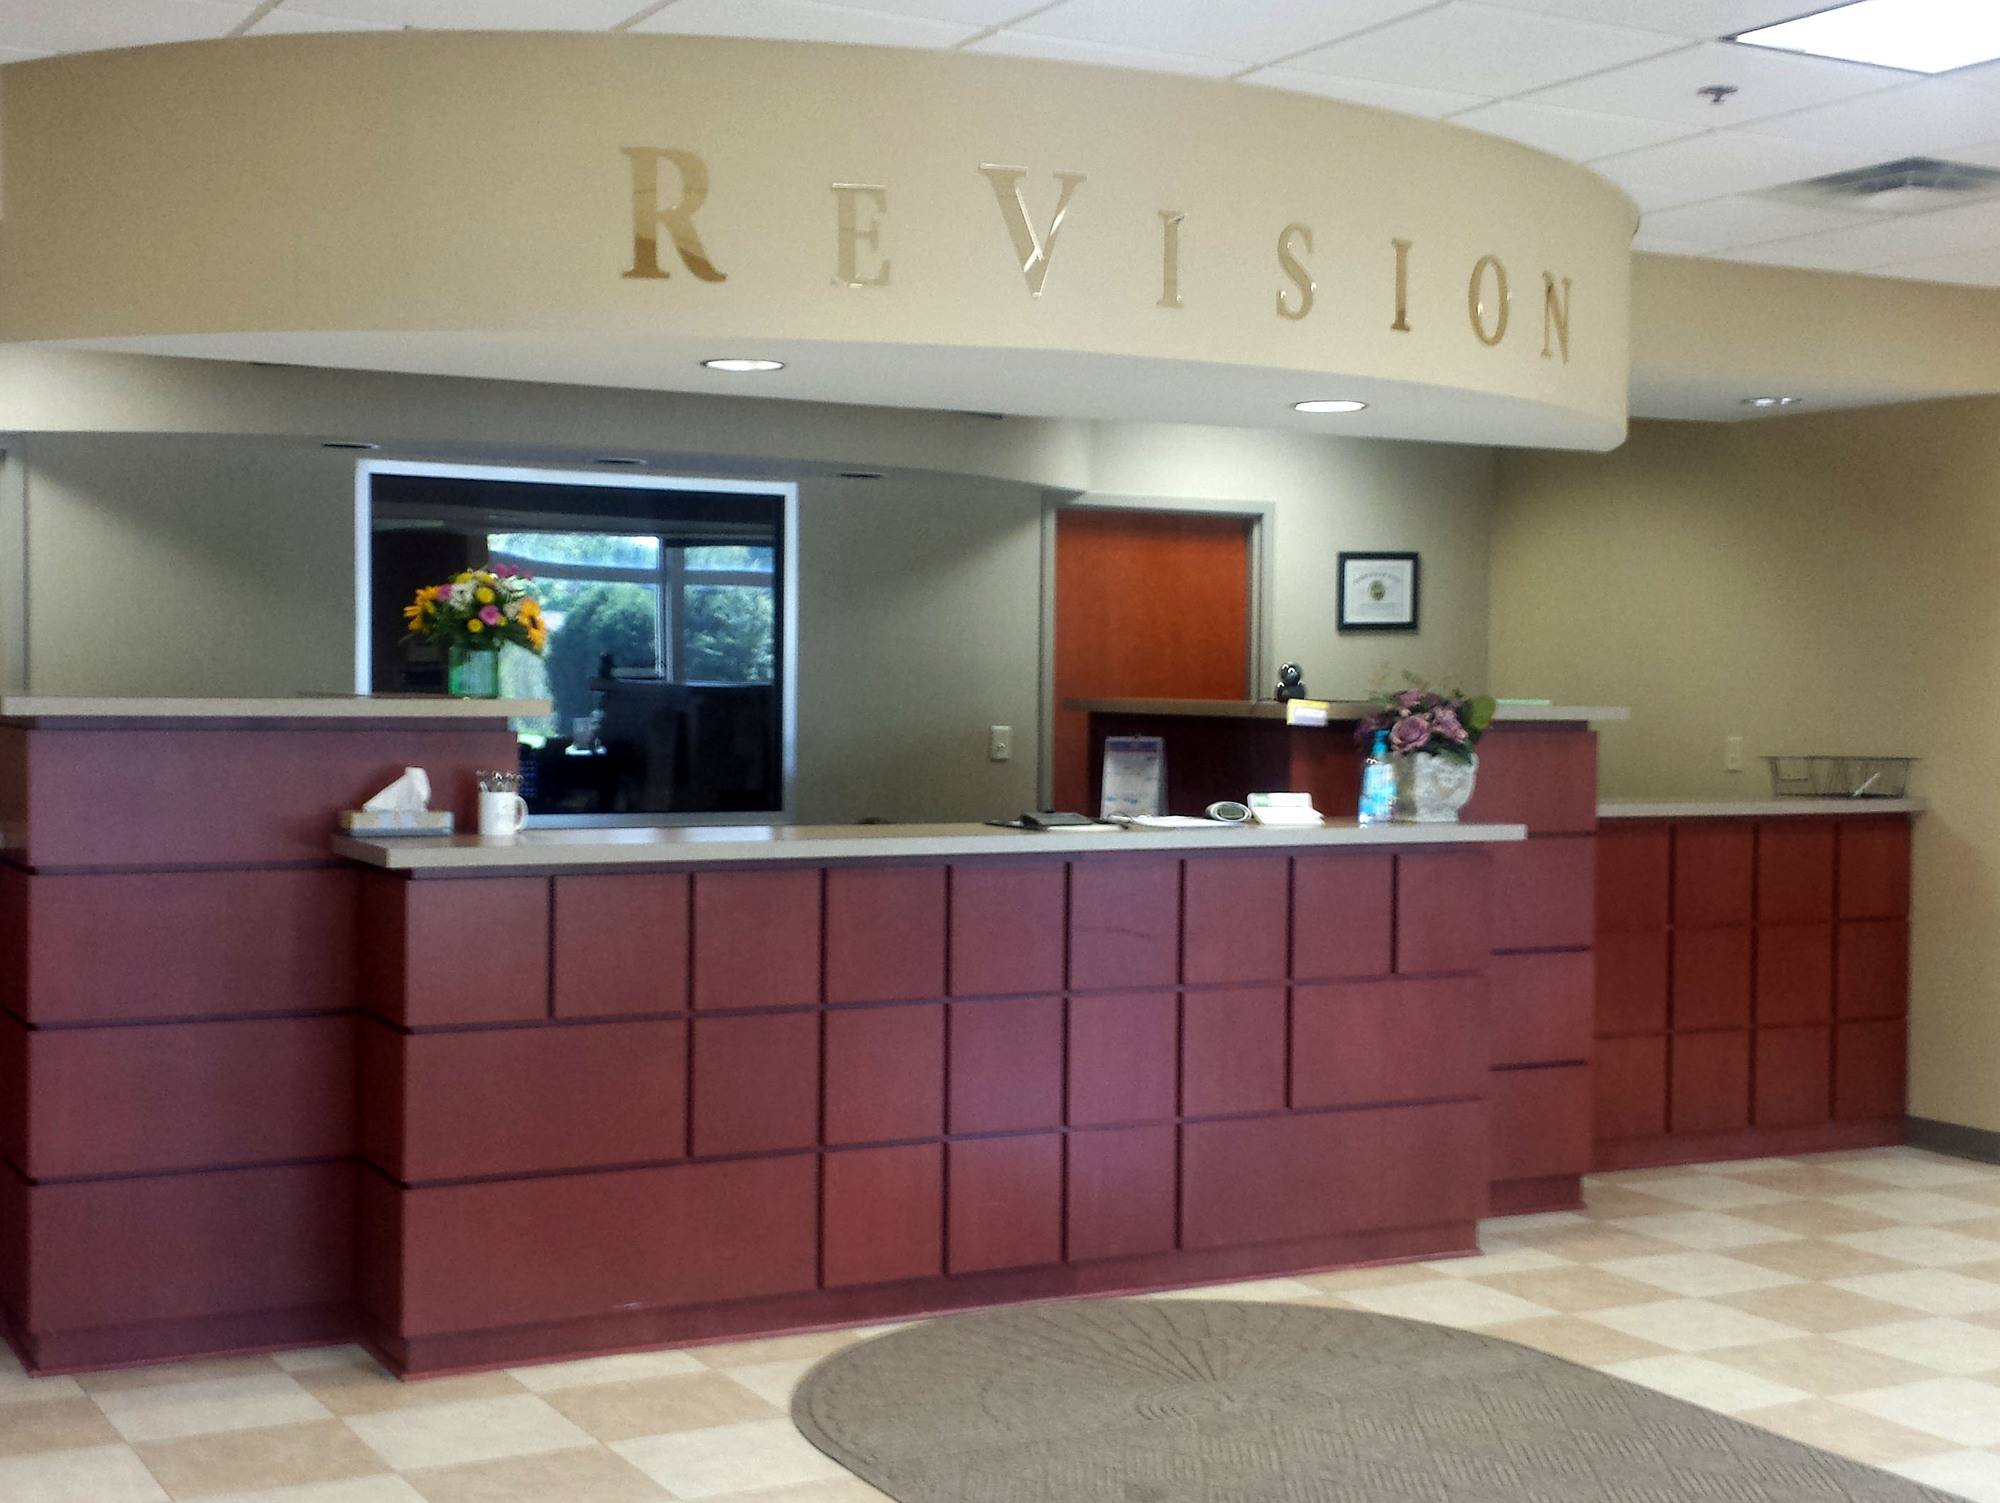 ReVision_Mansfield_FrontDesk